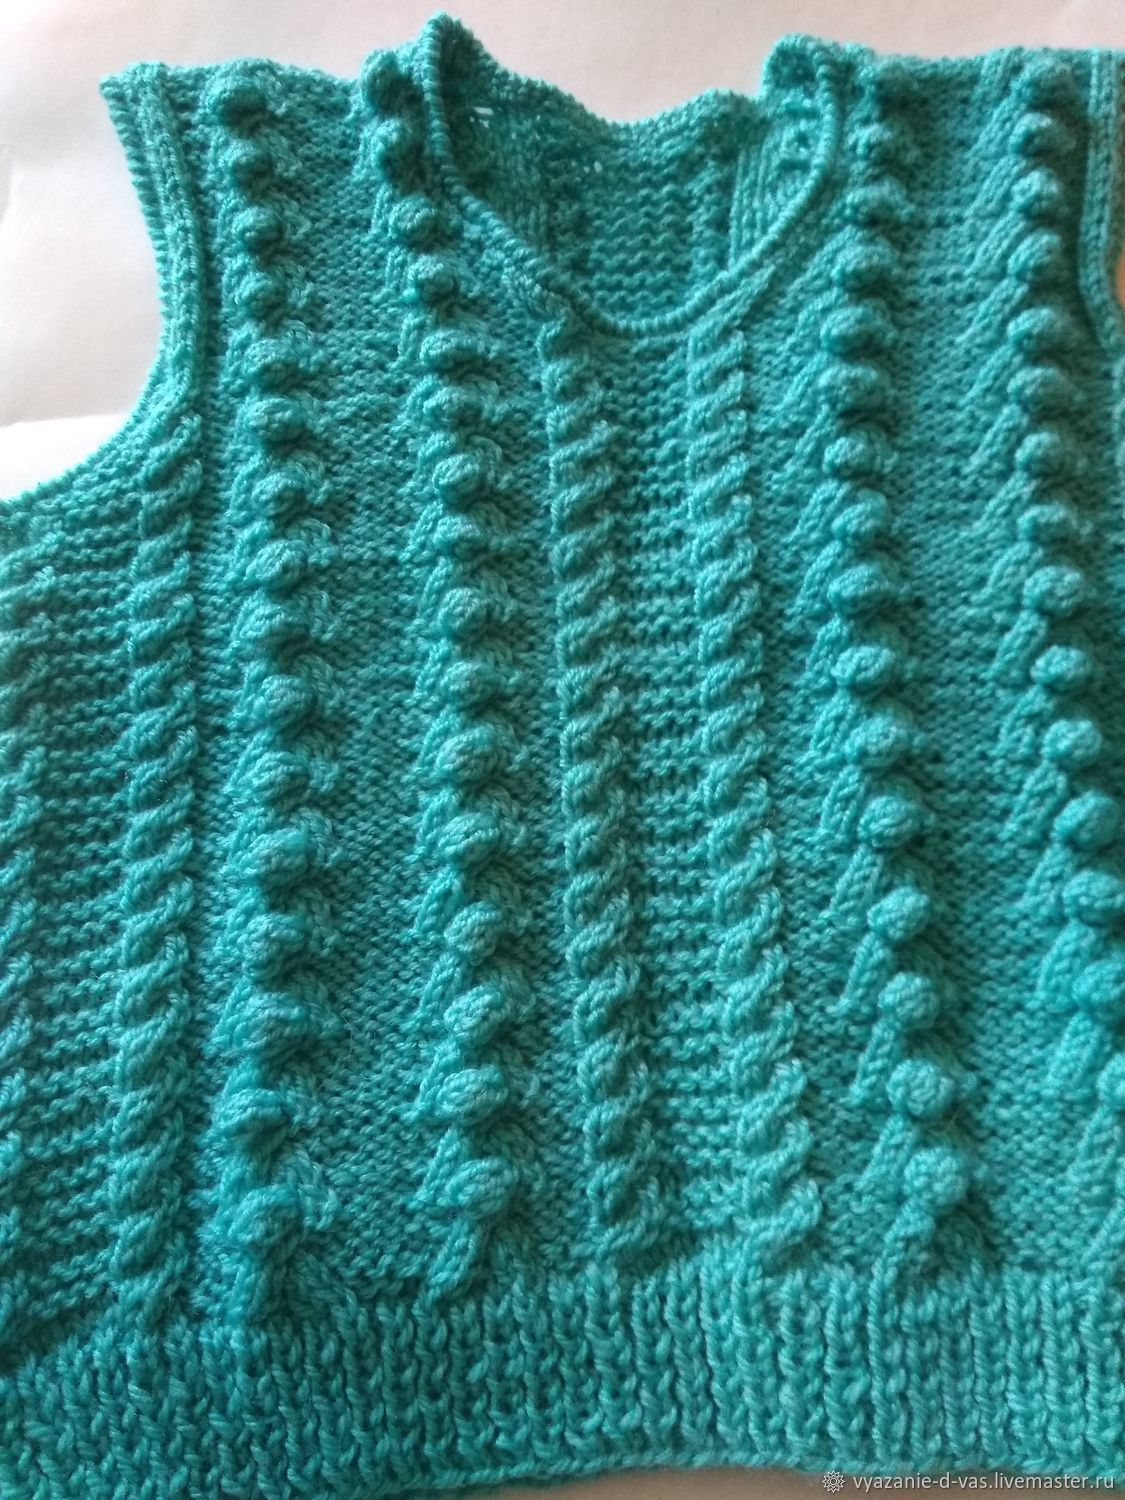 Vest knitted tank top wool Turquoise for boy girl autumn, Vests, Voronezh,  Фото №1